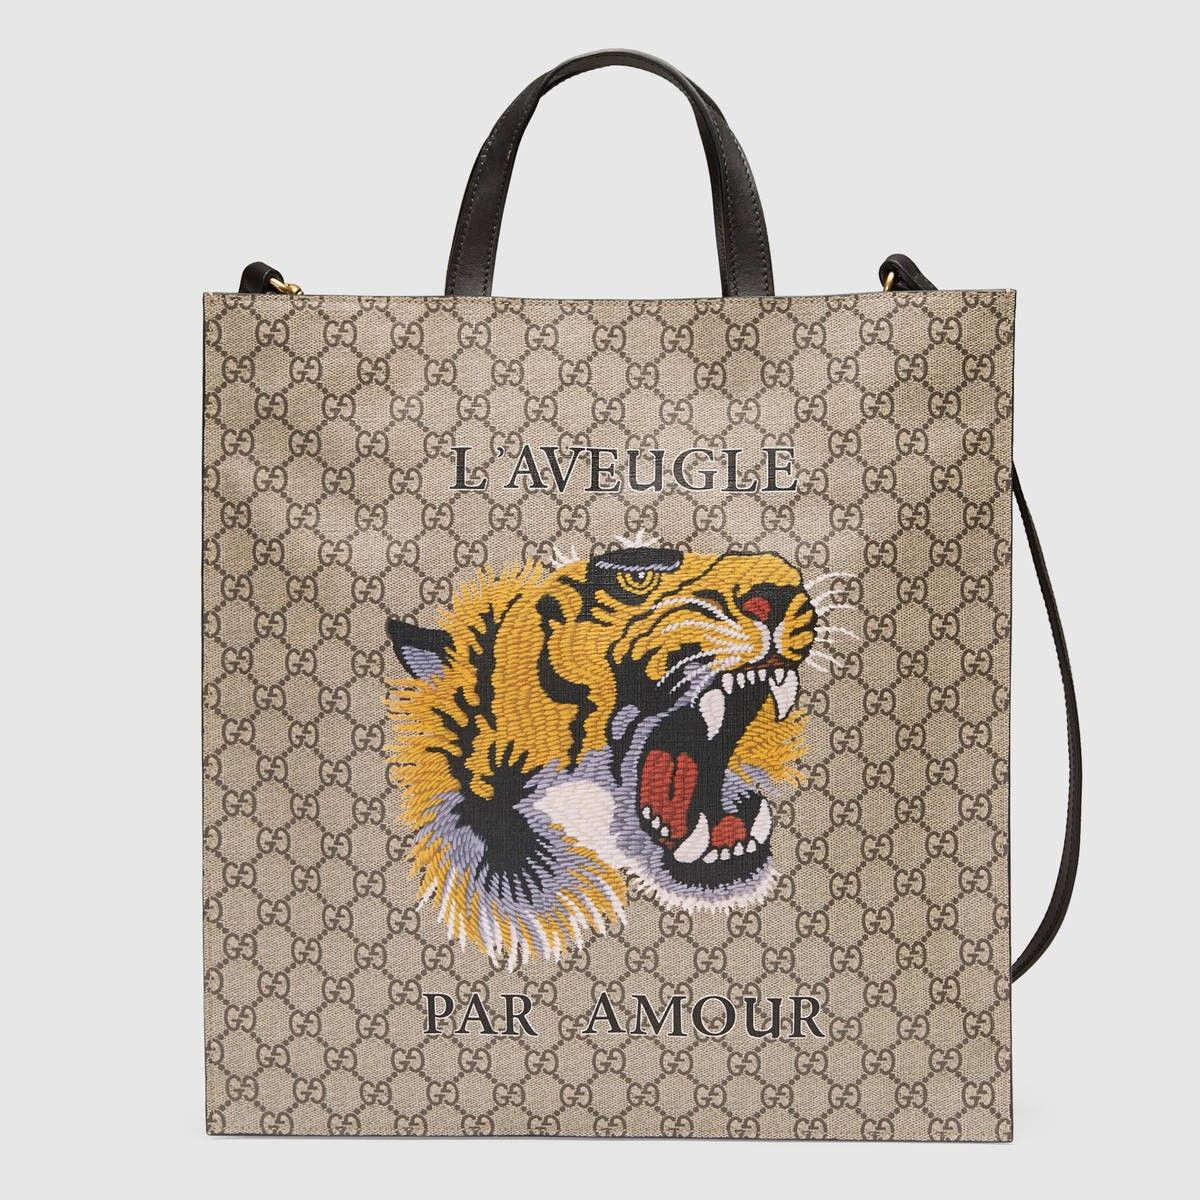 b5cfbf16f231 GUCCI Tiger Print Soft Gg Supreme Tote - Tiger Print. #gucci #bags #canvas # tote #leather #lining #shoulder bags #linen #hand bags #cotton #